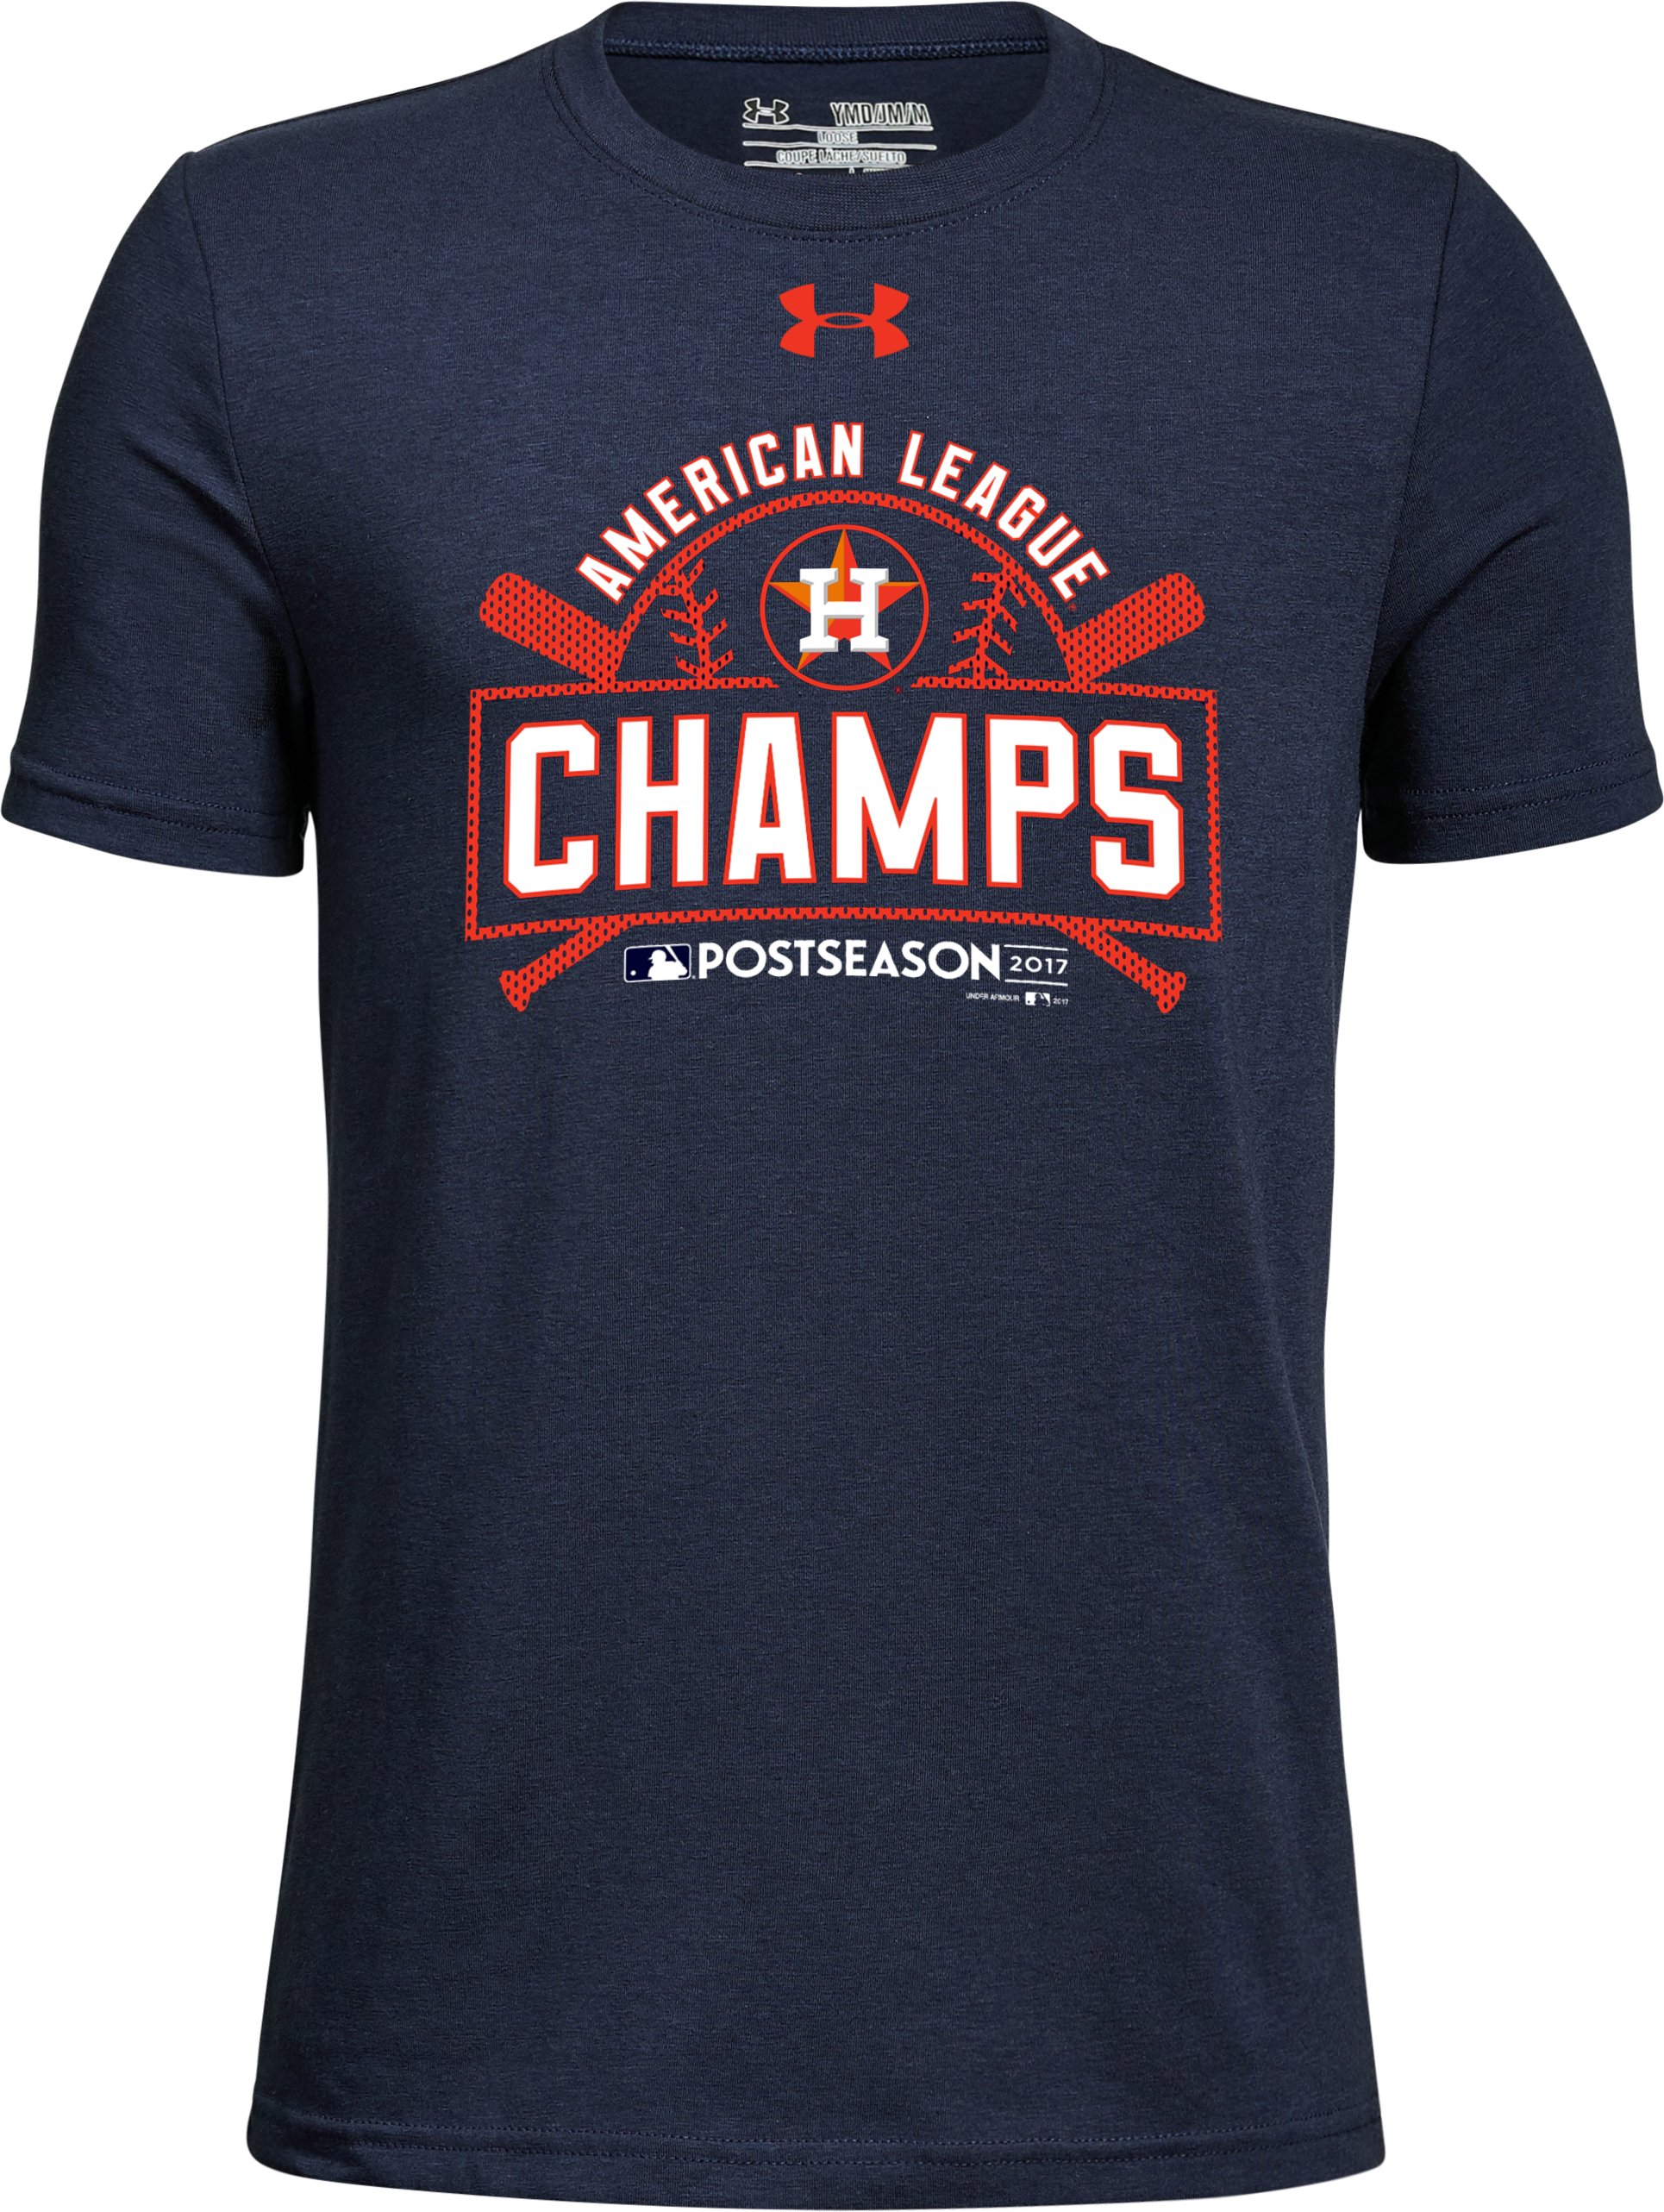 Youth Houston Astros League Champs T-Shirt, Midnight Navy, undefined